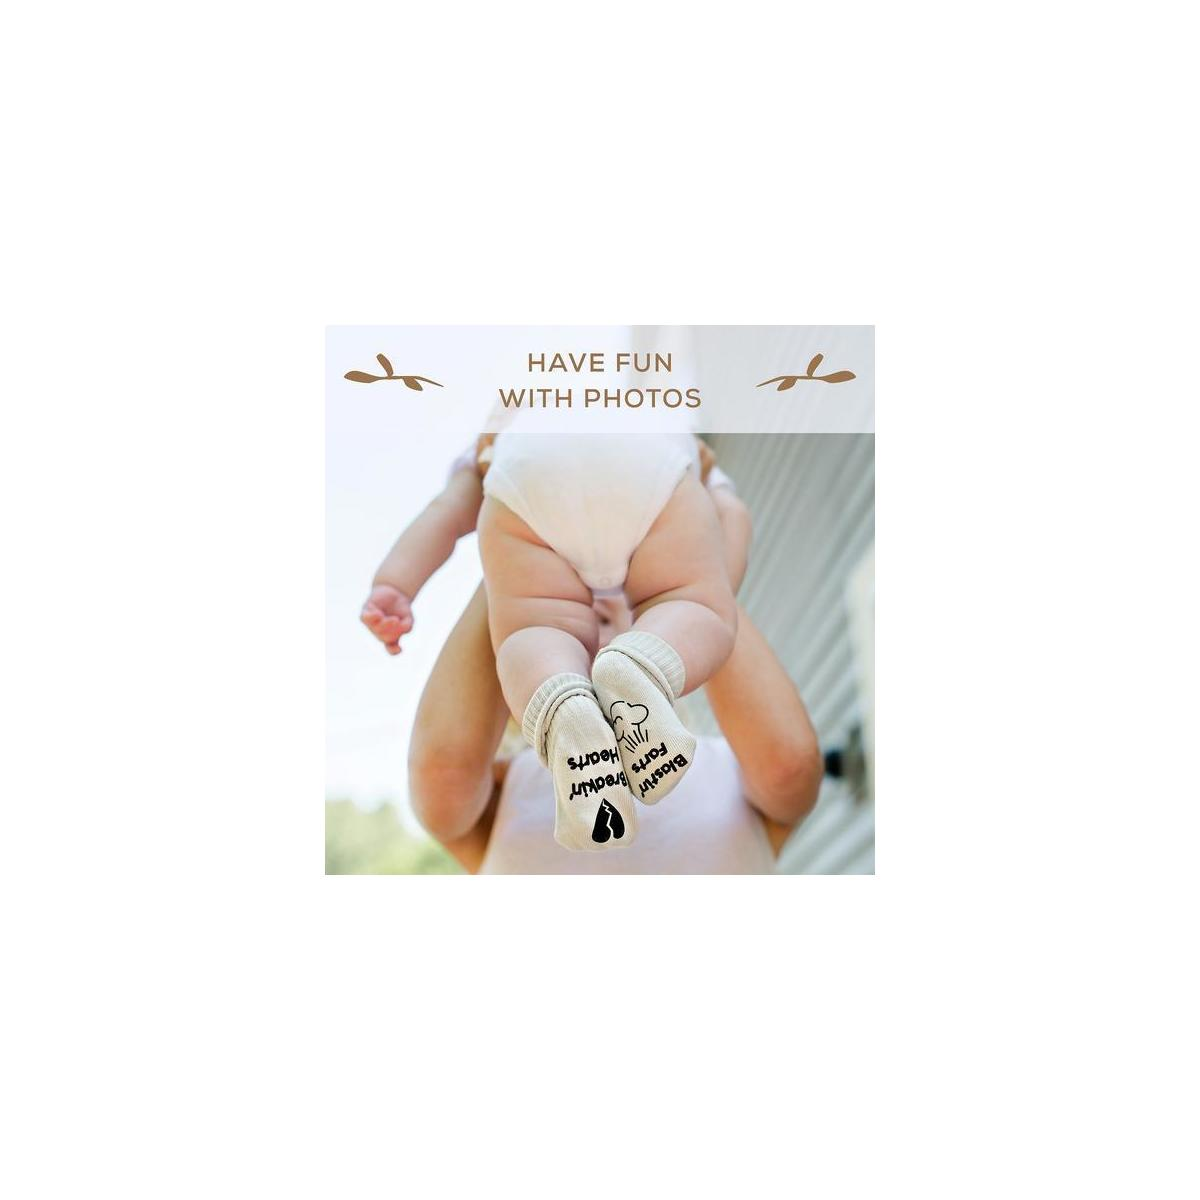 First Landings Baby Socks Gift Set | Adorable Quotes, 6 Pairs and Gift Packaging | Unique Baby Shower Gift